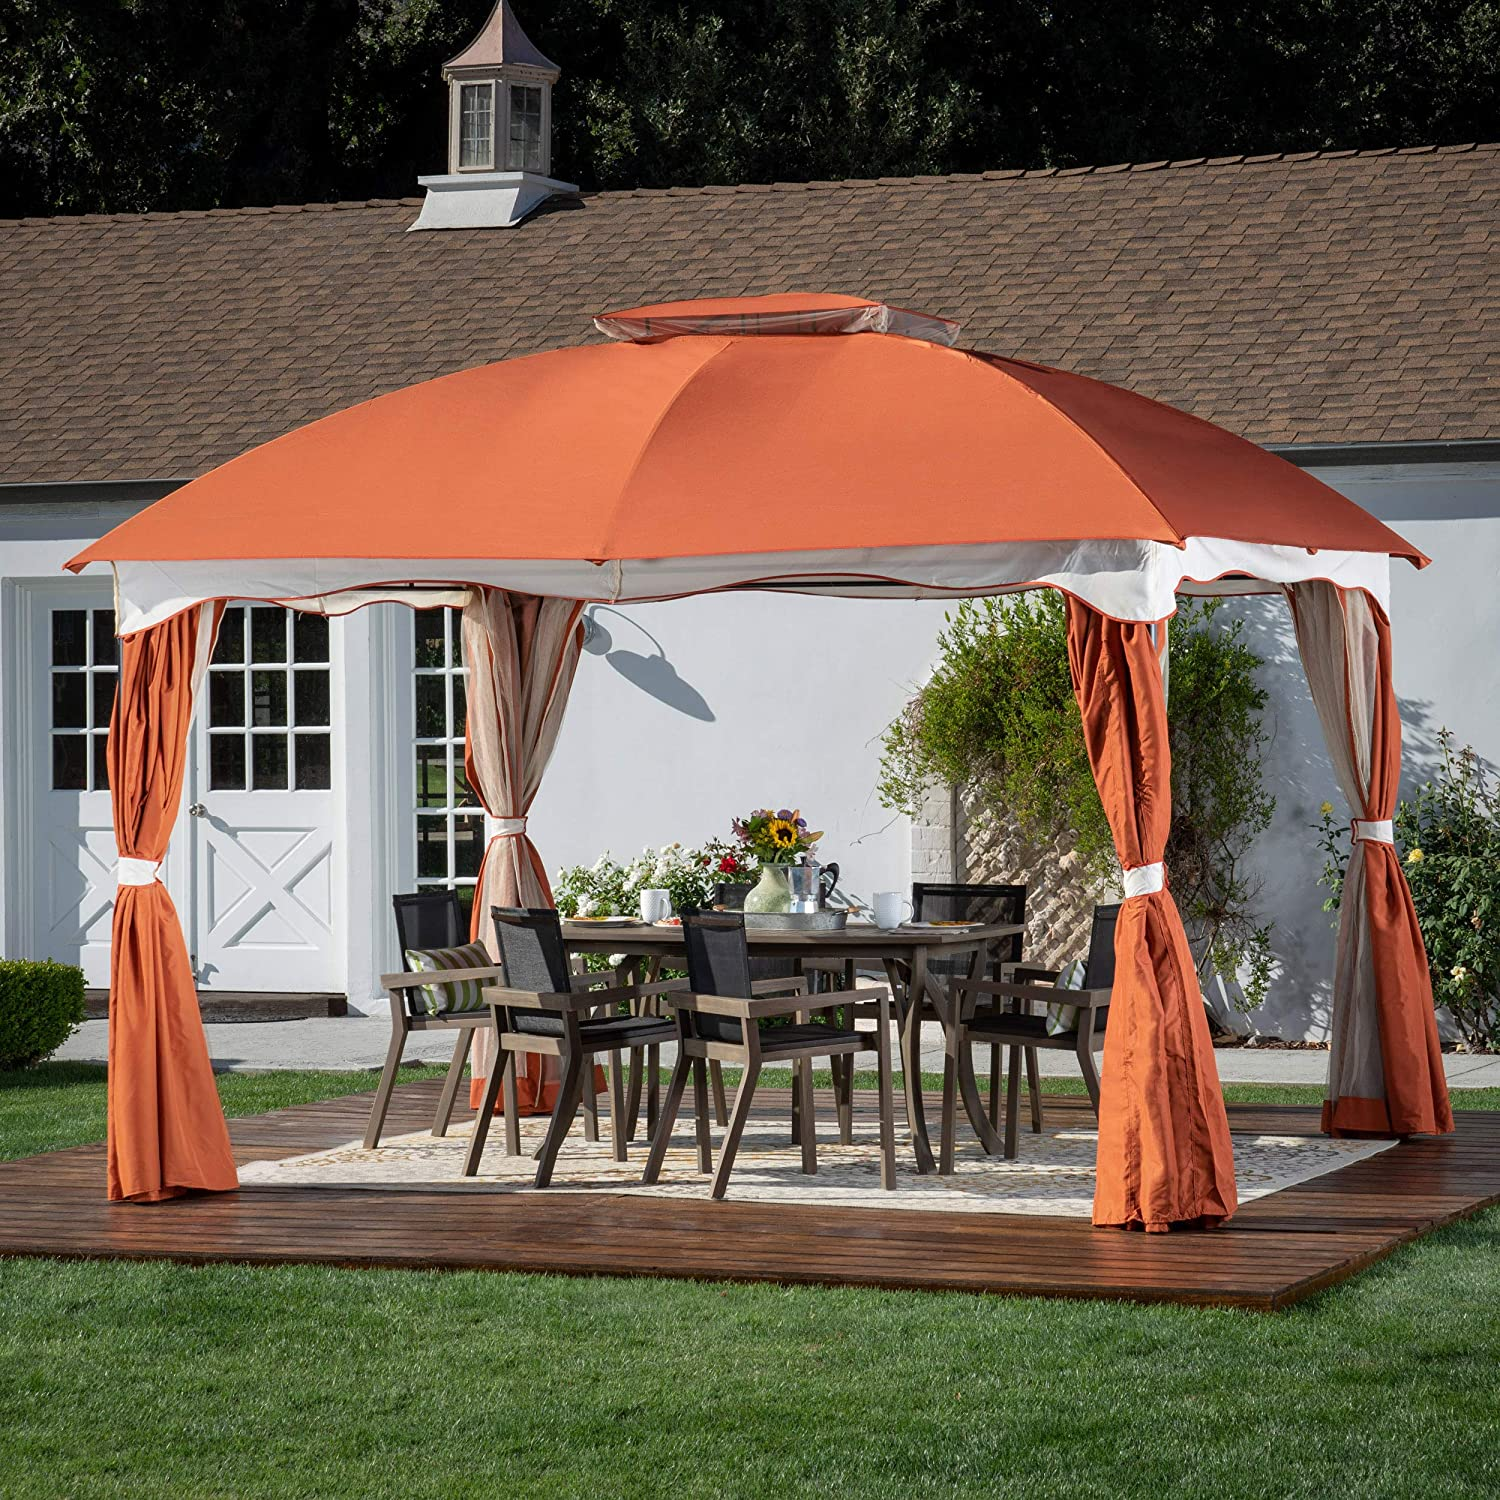 Great Deal Furniture Ava Outdoor 12 by 10 Water Resistant Fabric and Steel Gazebo, Canvas Rust Orange